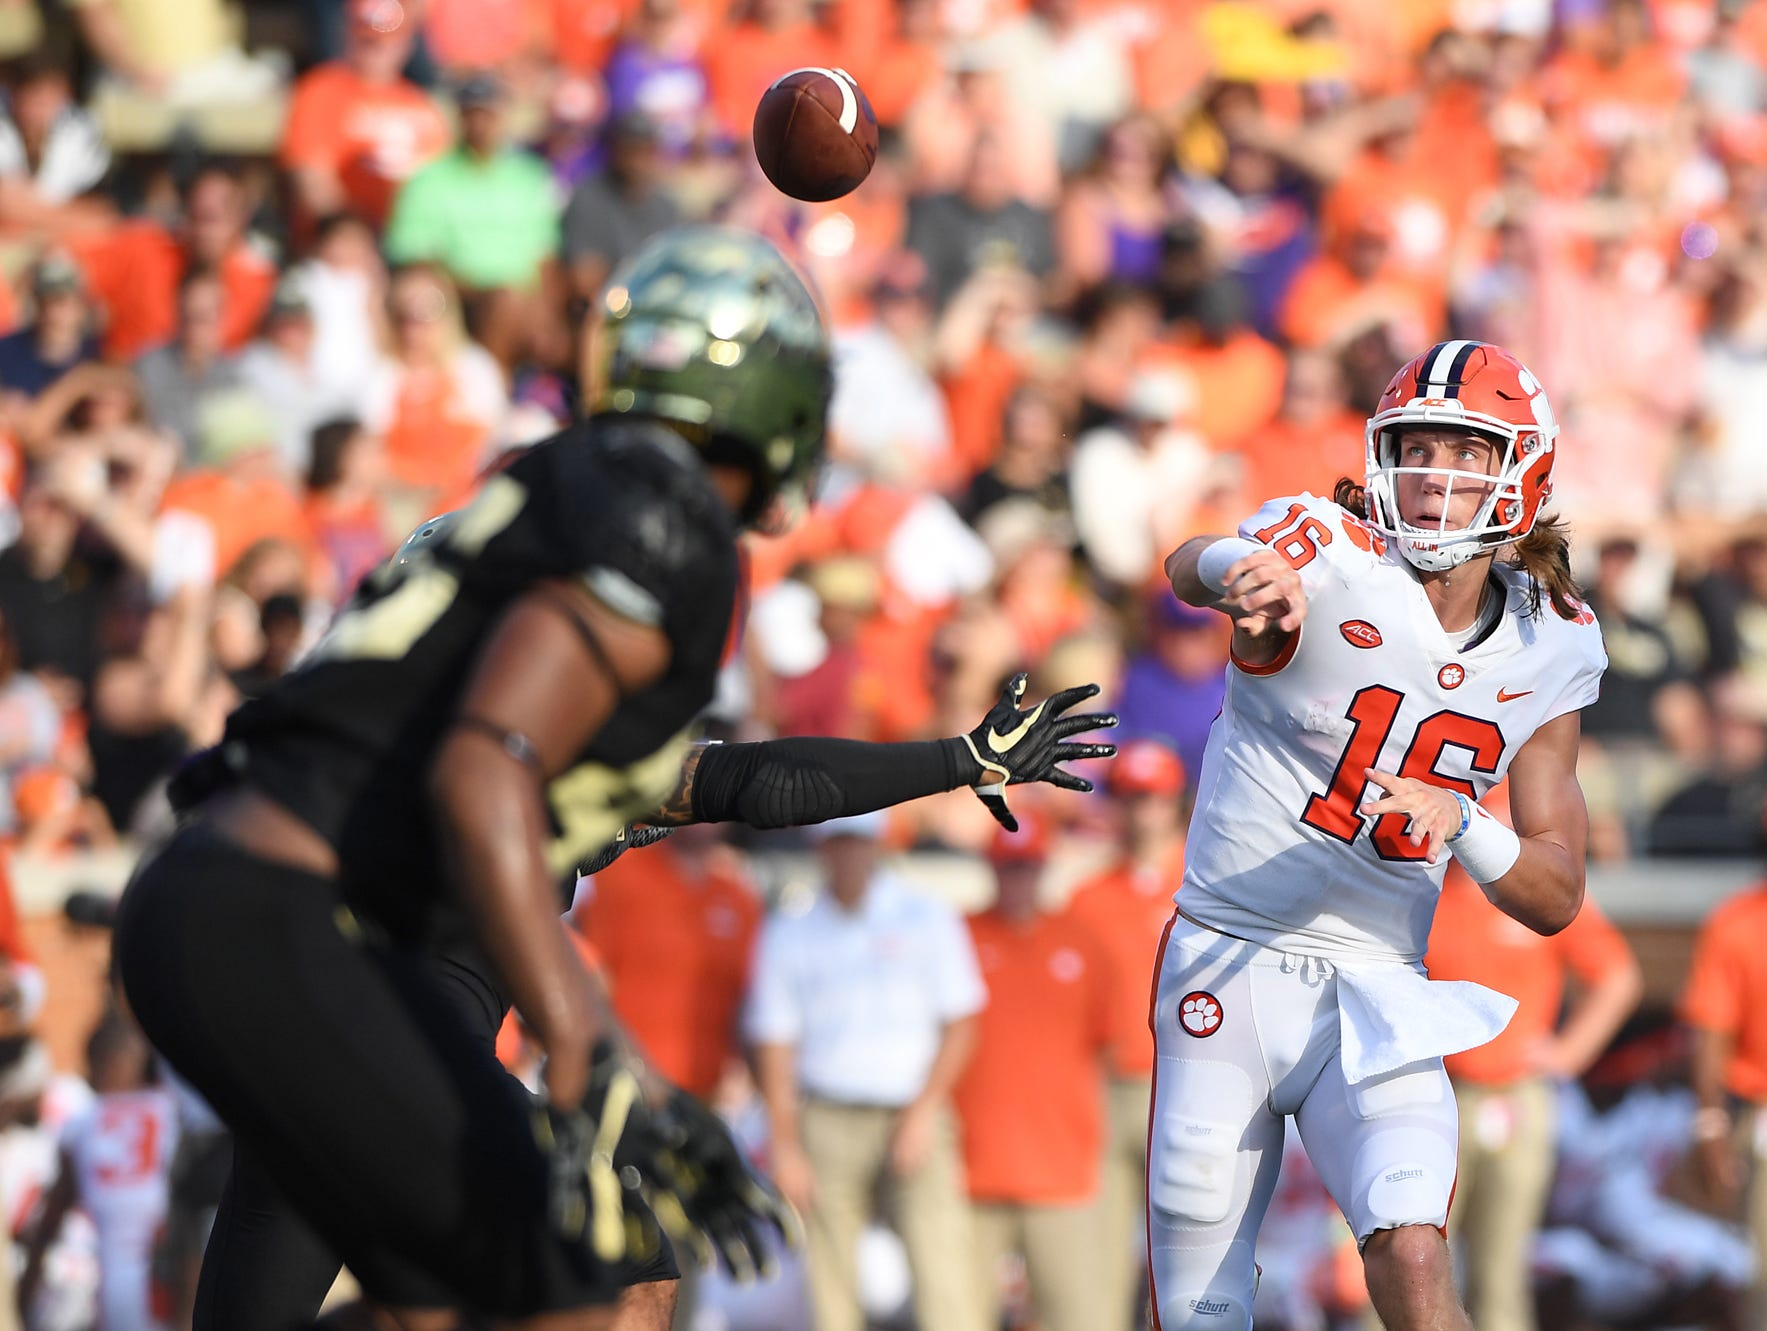 Clemson quarterback Trevor Lawrence (16) throws against Wake Forest during the 2nd quarter at BB&T Field in Winston Salem, N.C. Saturday, October 6, 2018.